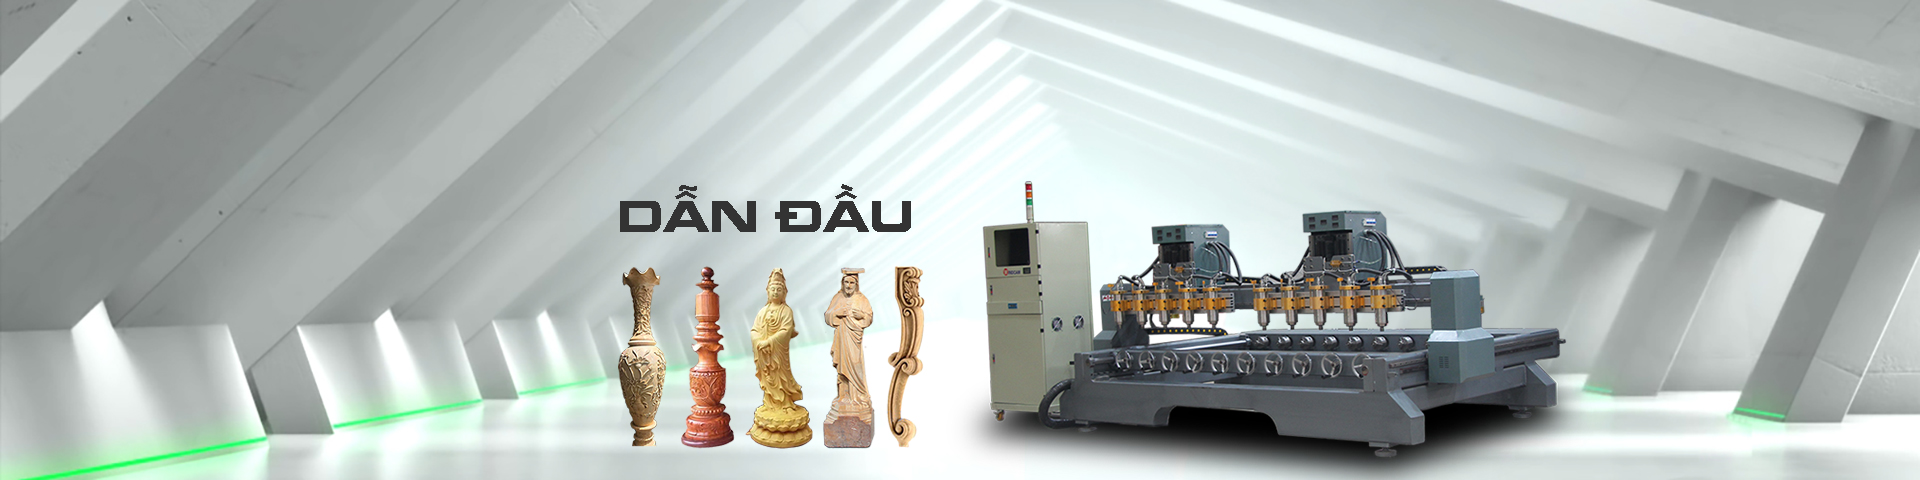 http://windcam.vn/may-cnc-duc-tuong-4d